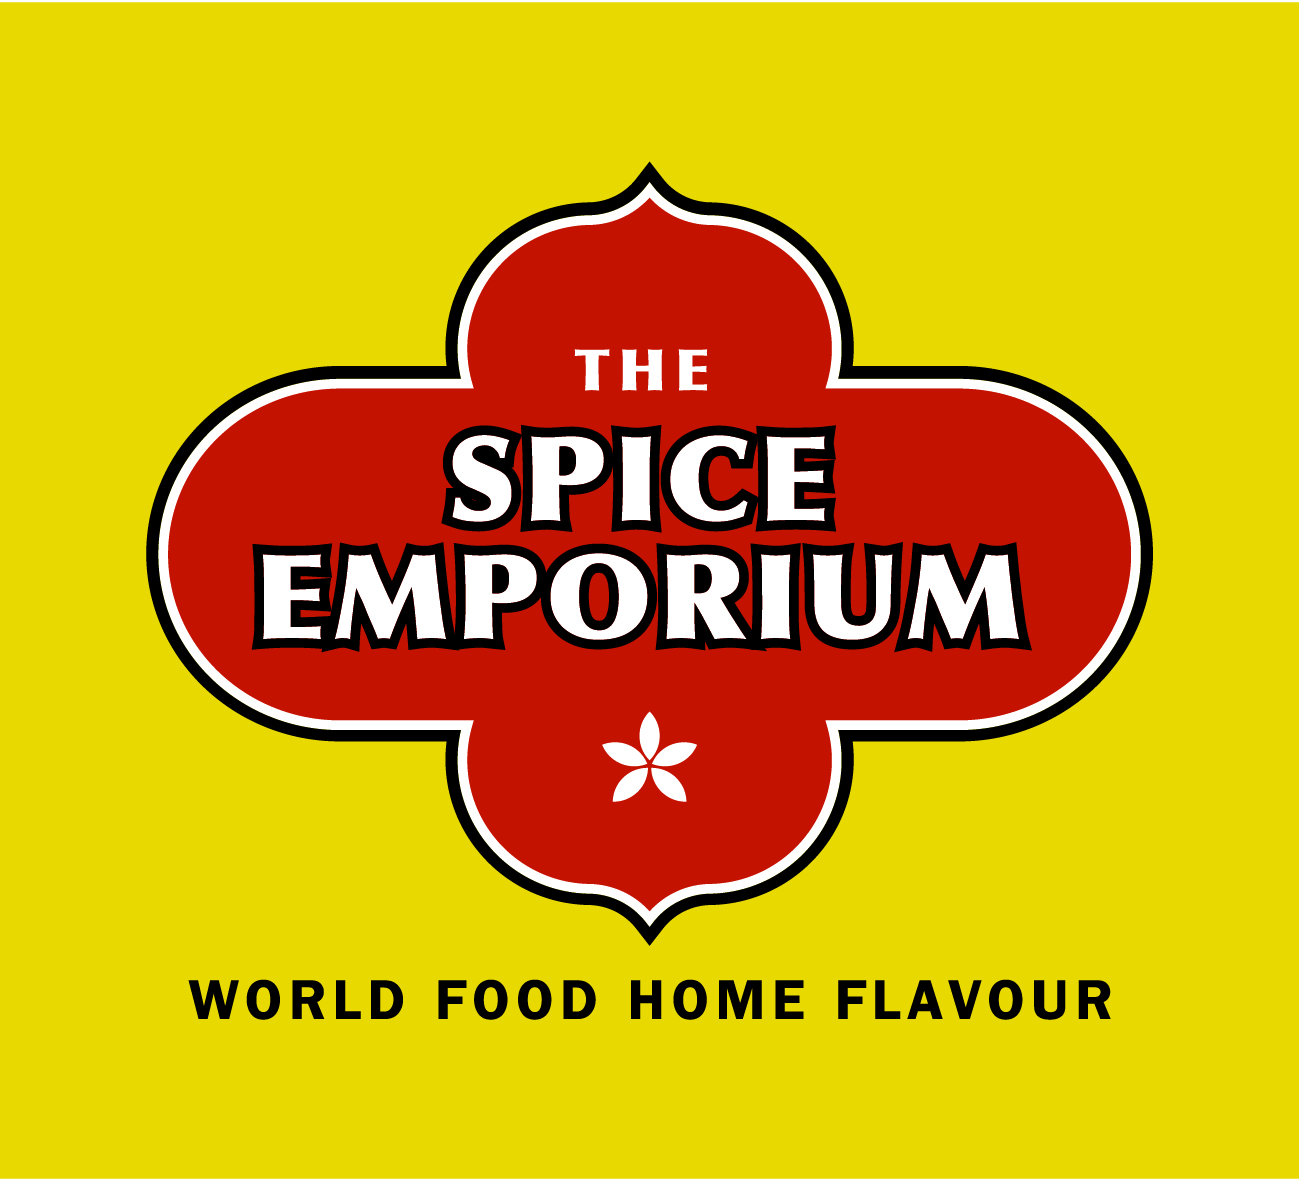 The Spice Emporium